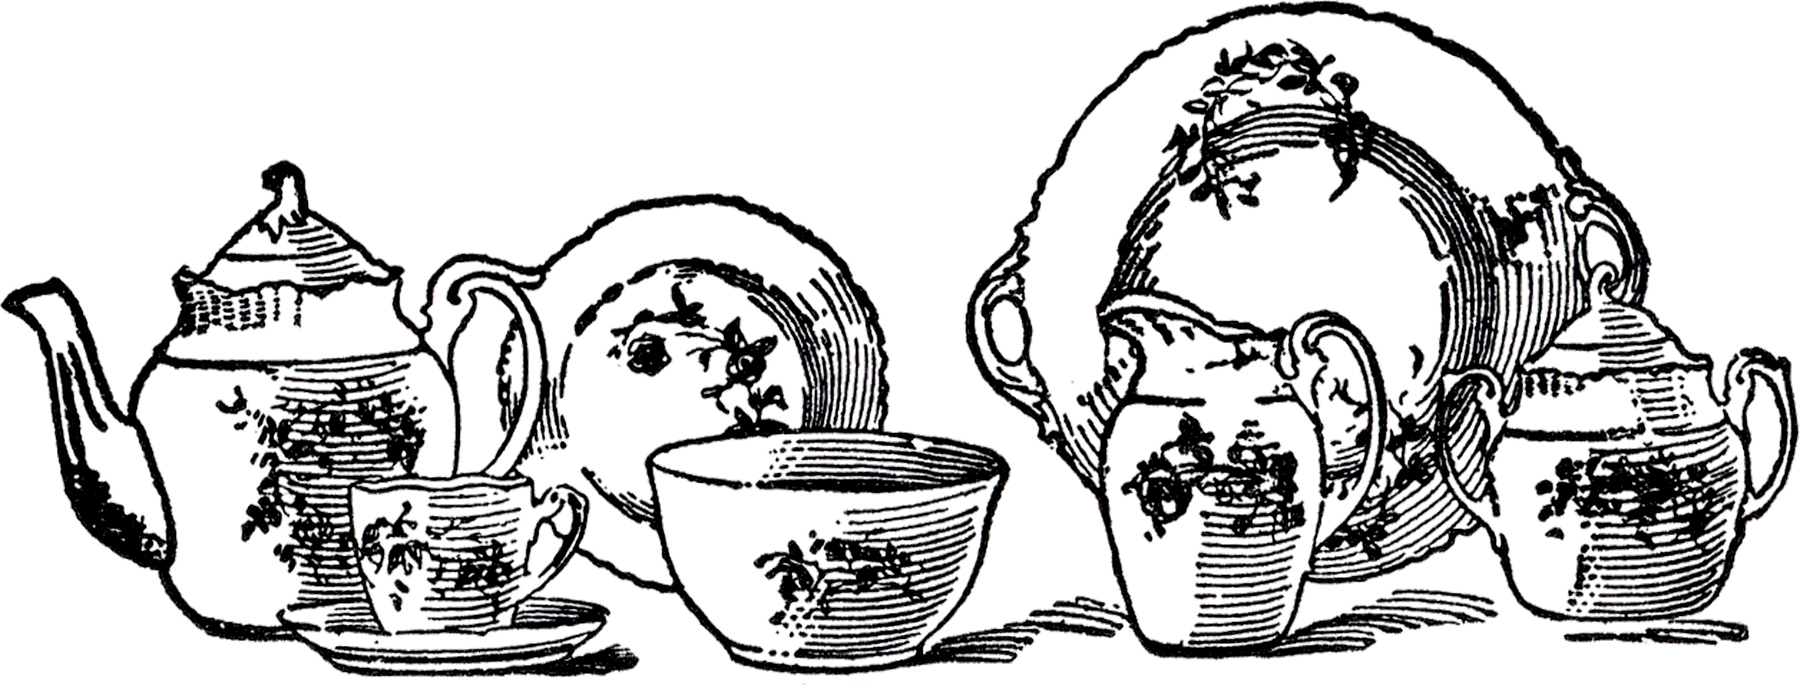 Vintage China Tea Set Image on vintage vector graphics